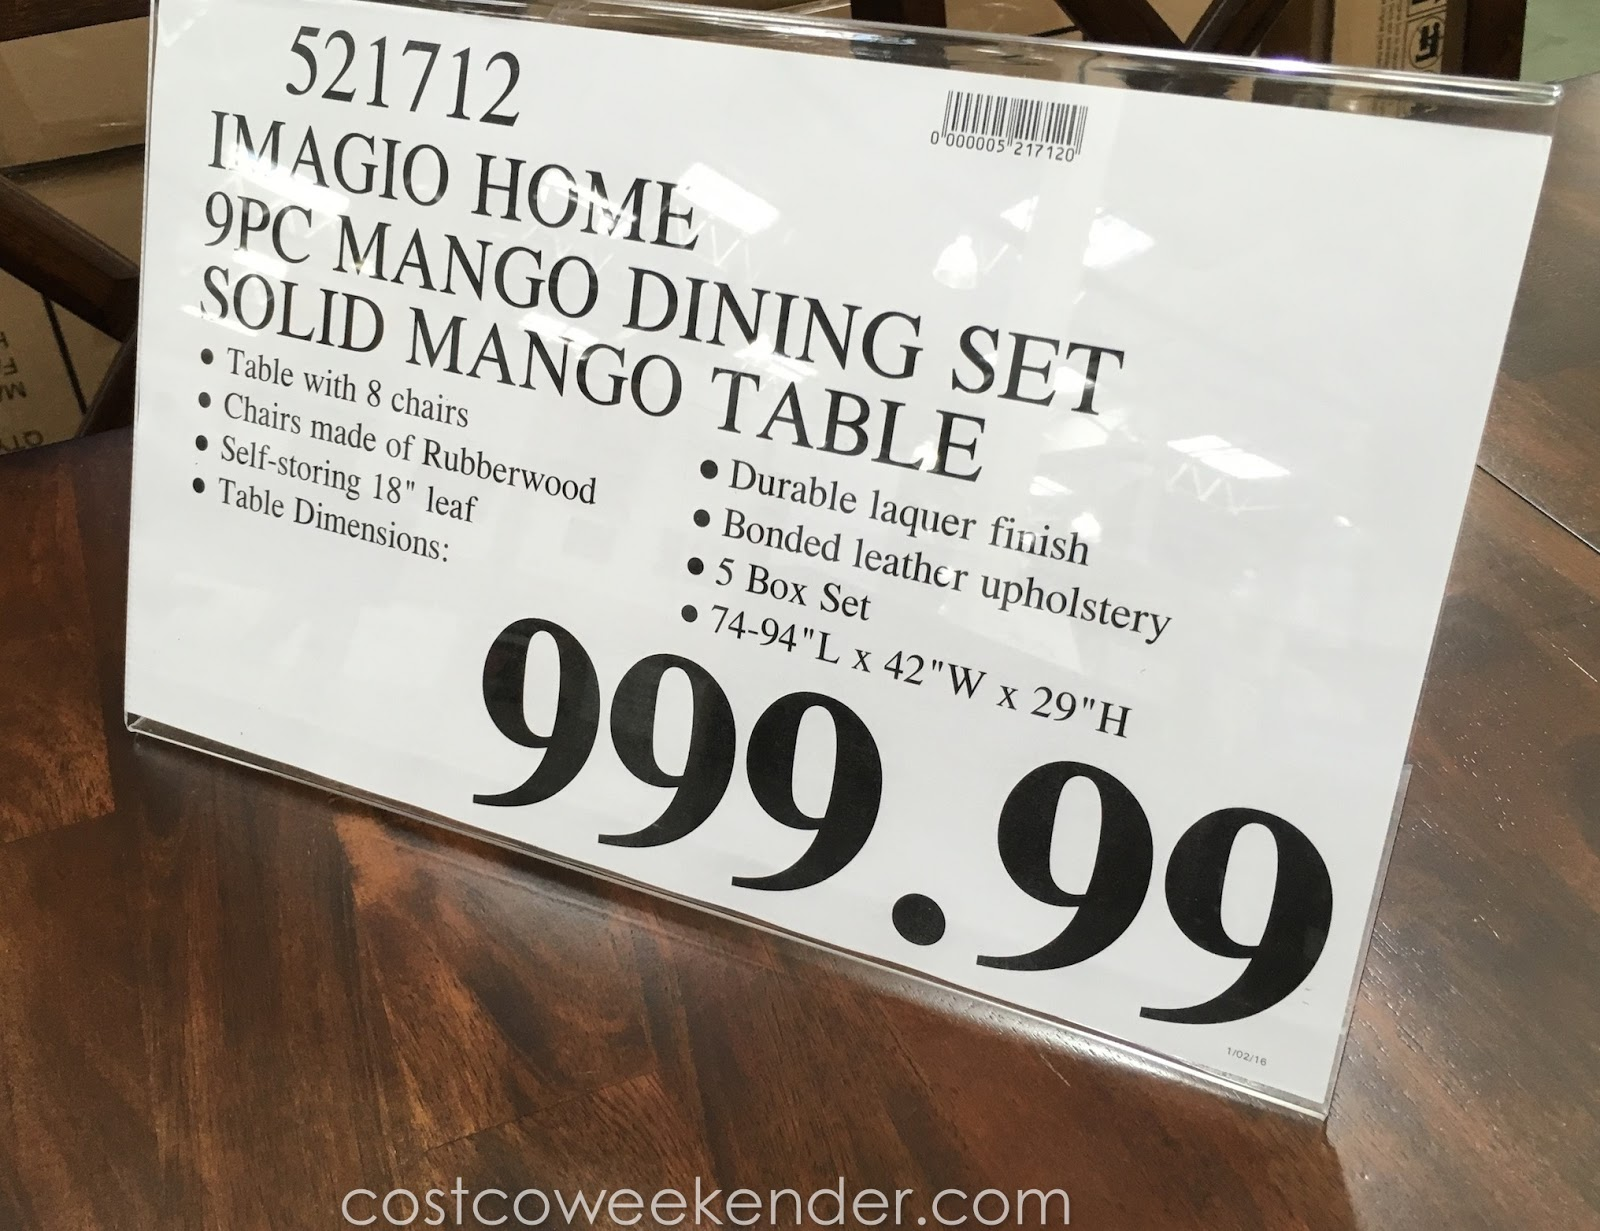 Imagio Home 9 Piece Solid Wood Dining